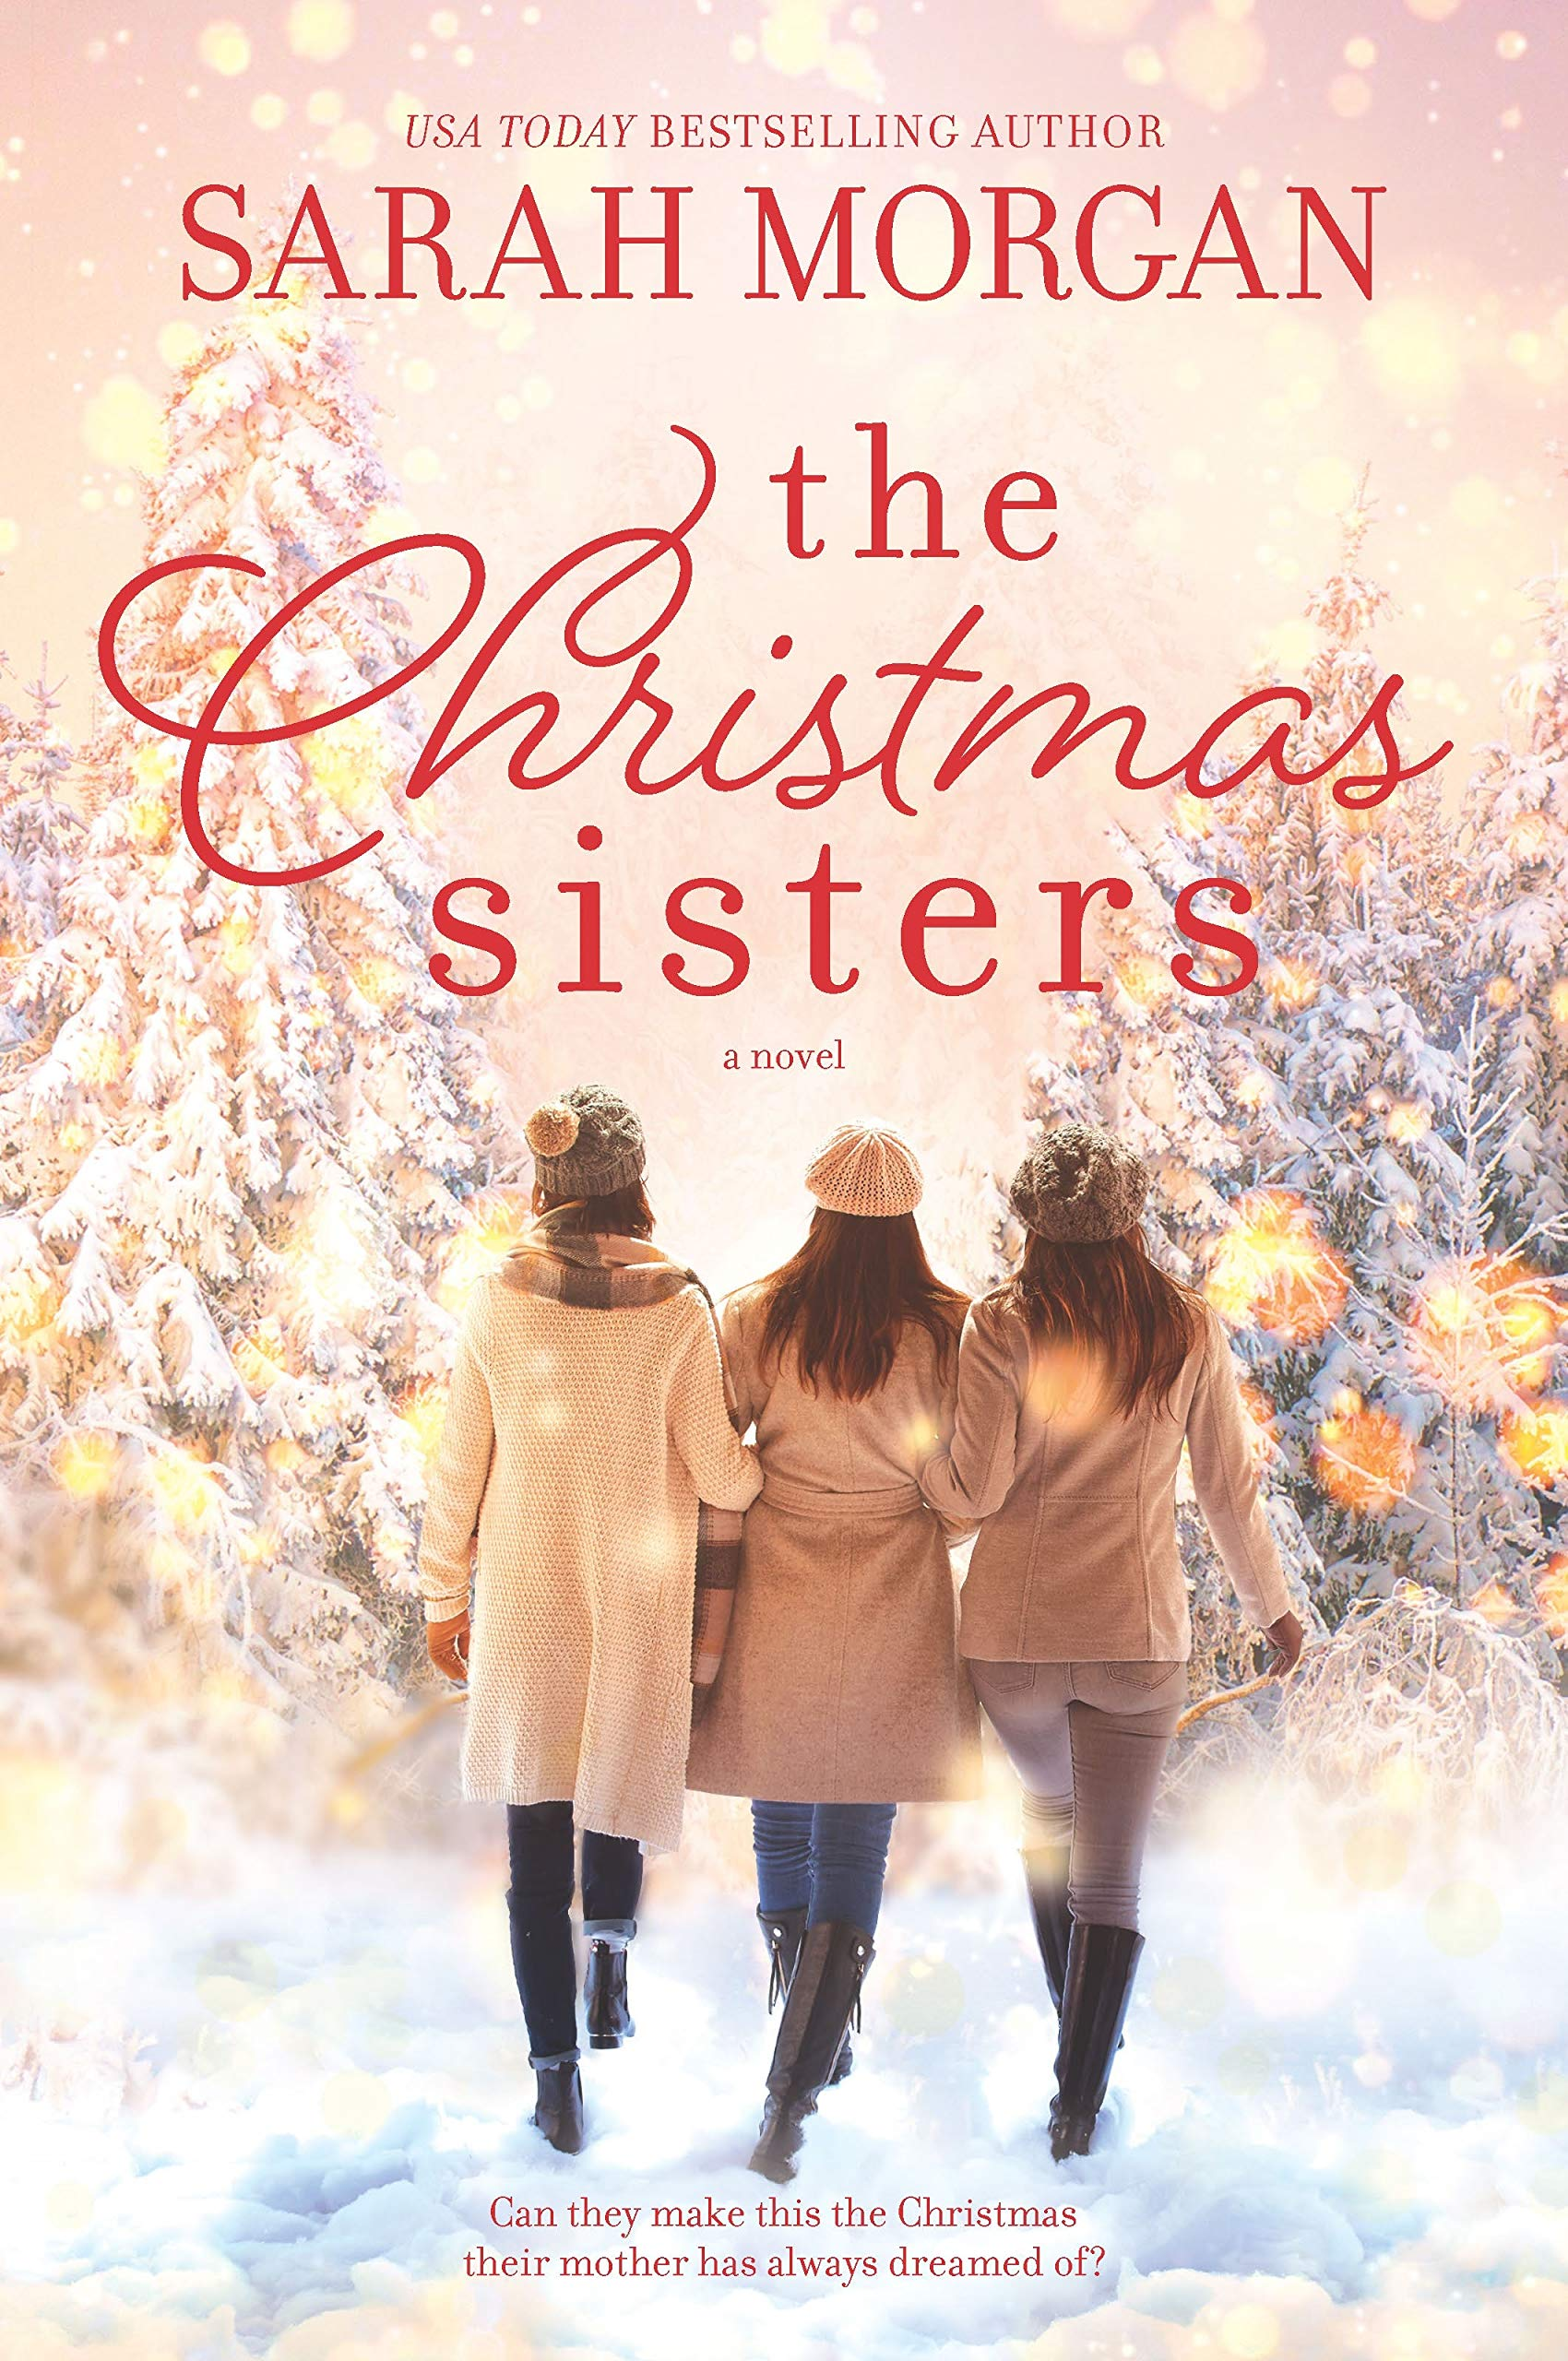 The Teeny tiny à Tout Faire: 🎄 Novel of the Week [Christmas Edition]: The Christmas Sisters by Sarah Morgan